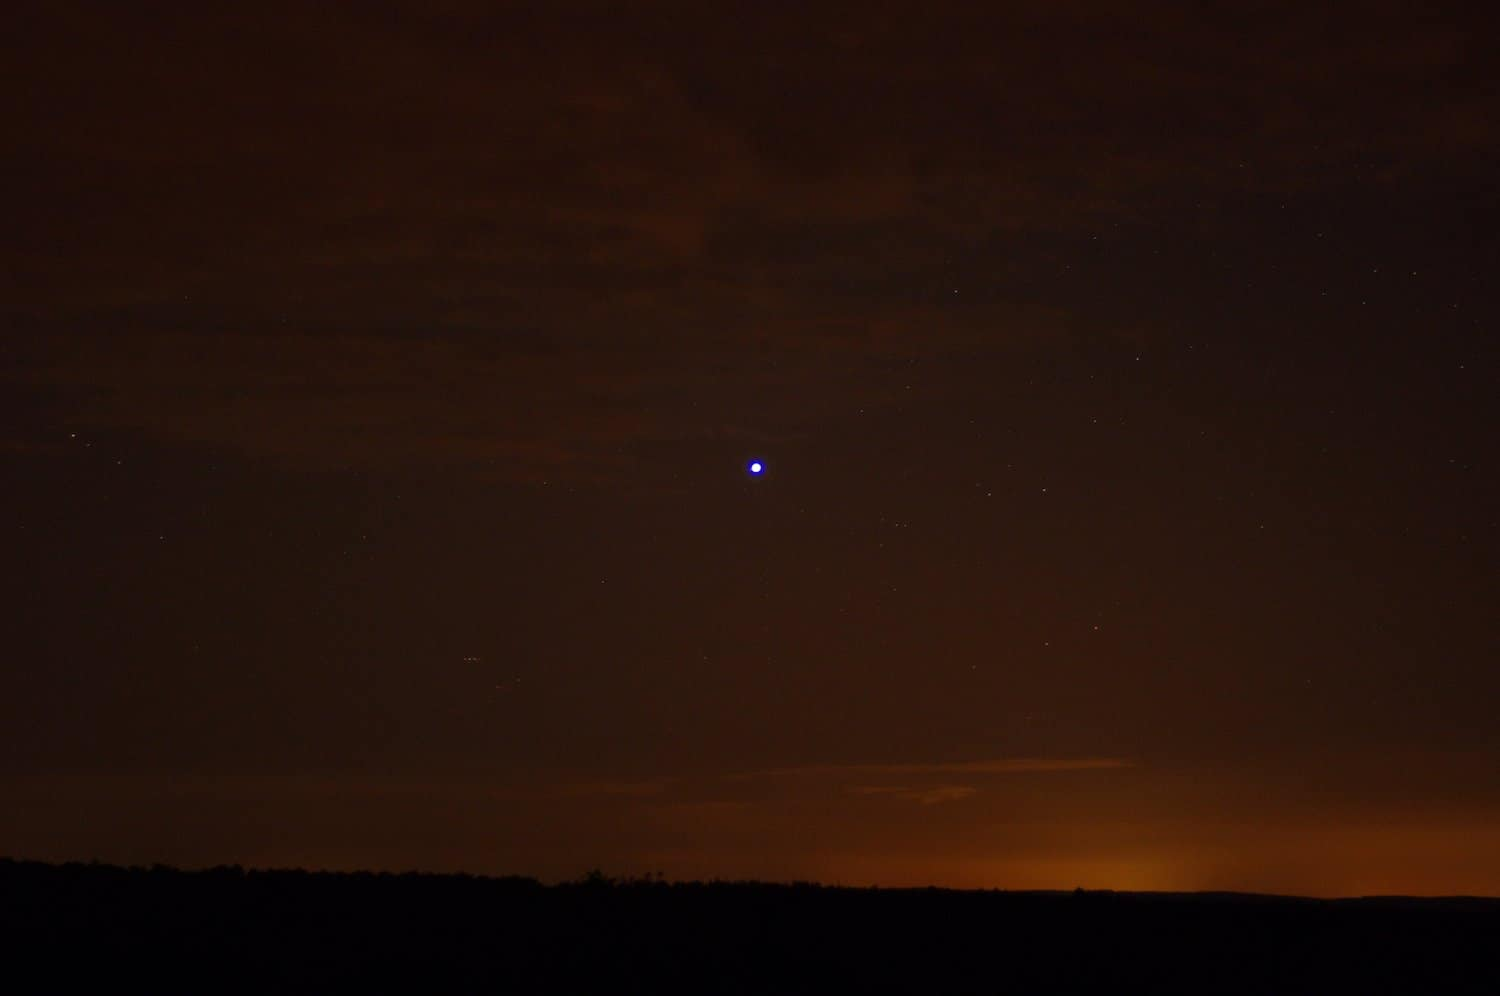 Night Sky October - Uranus at Opposition - Peter via Flickr